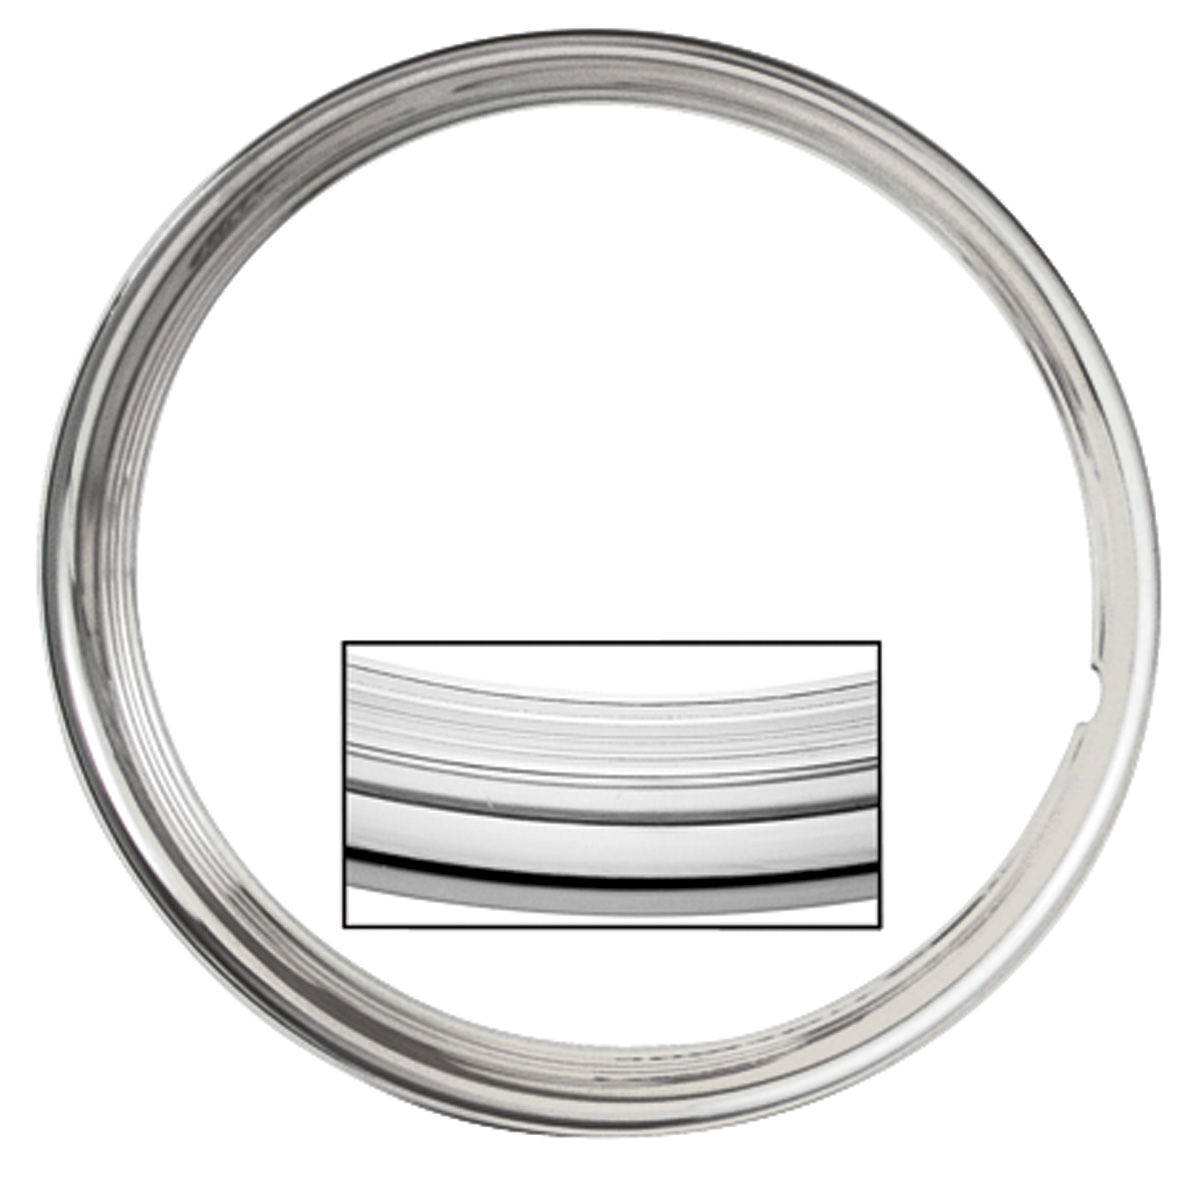 Trim Ring, SS Rally Wheel, 1969-70 CH/EC/MC, Square Lip, Stainless Steel